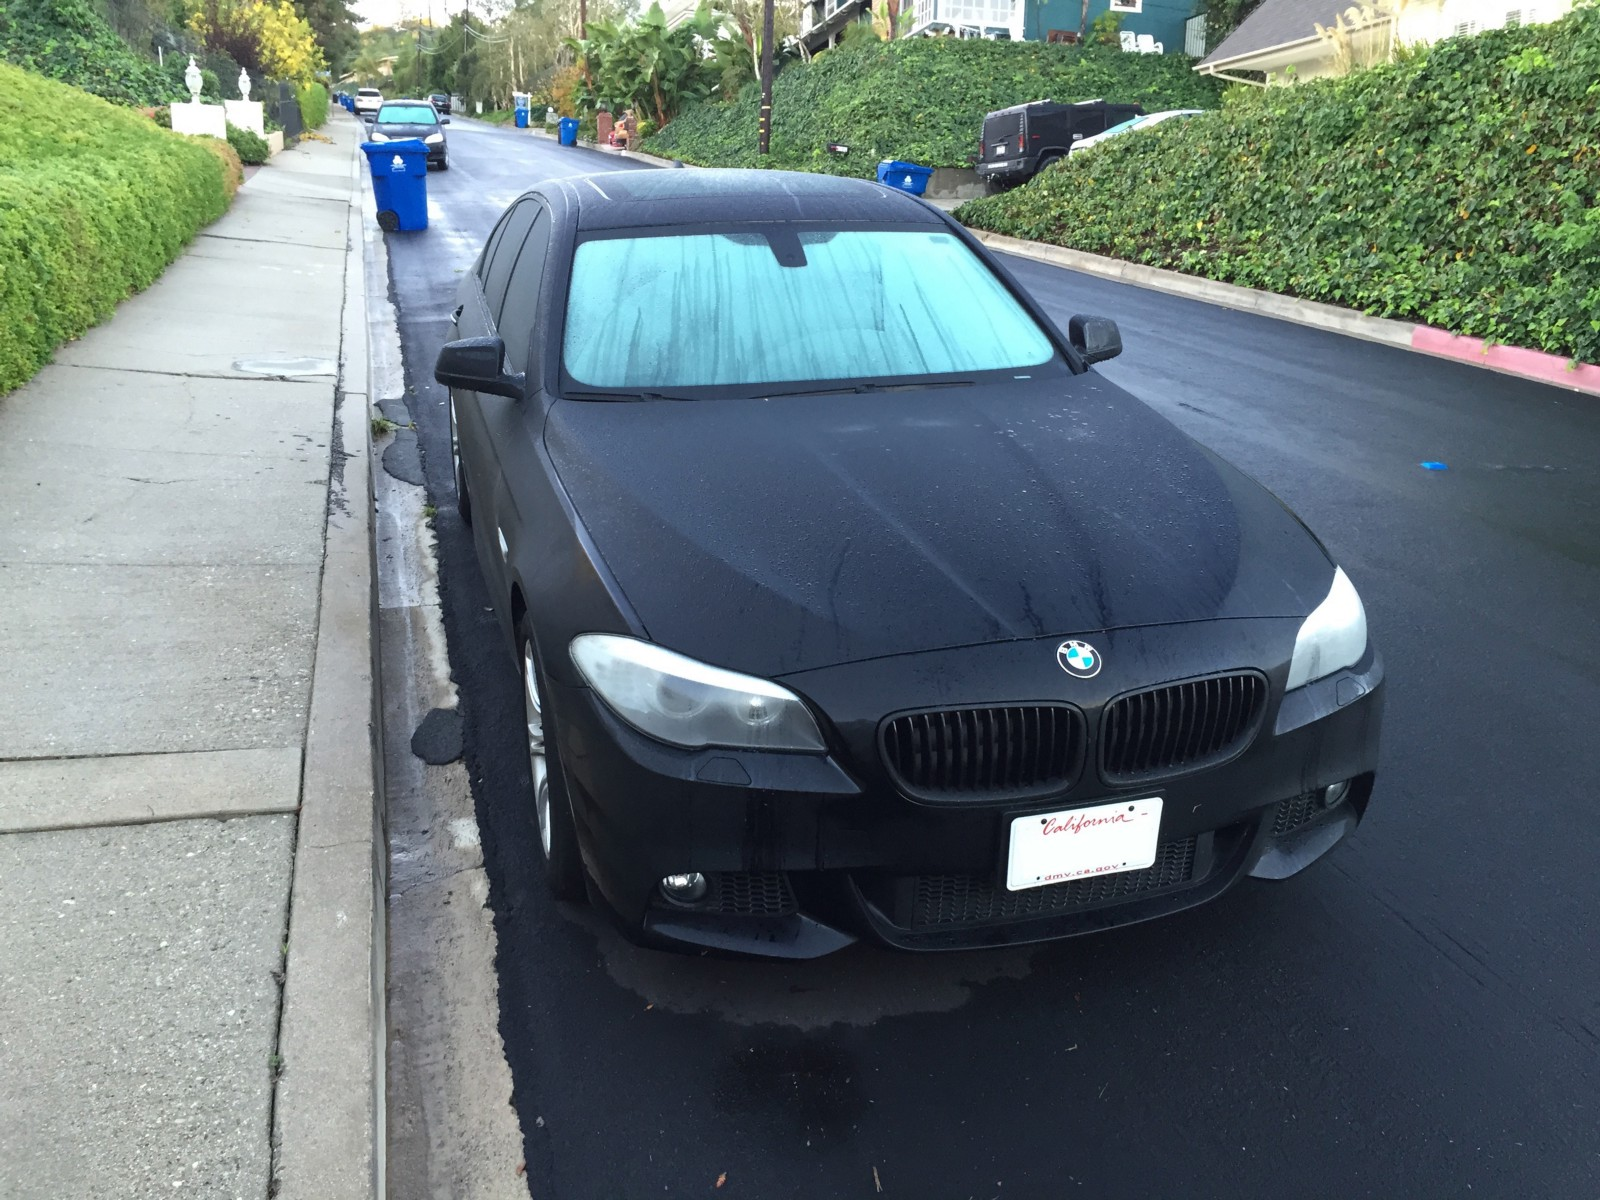 convertible bmw cost a cuponcity co does much how